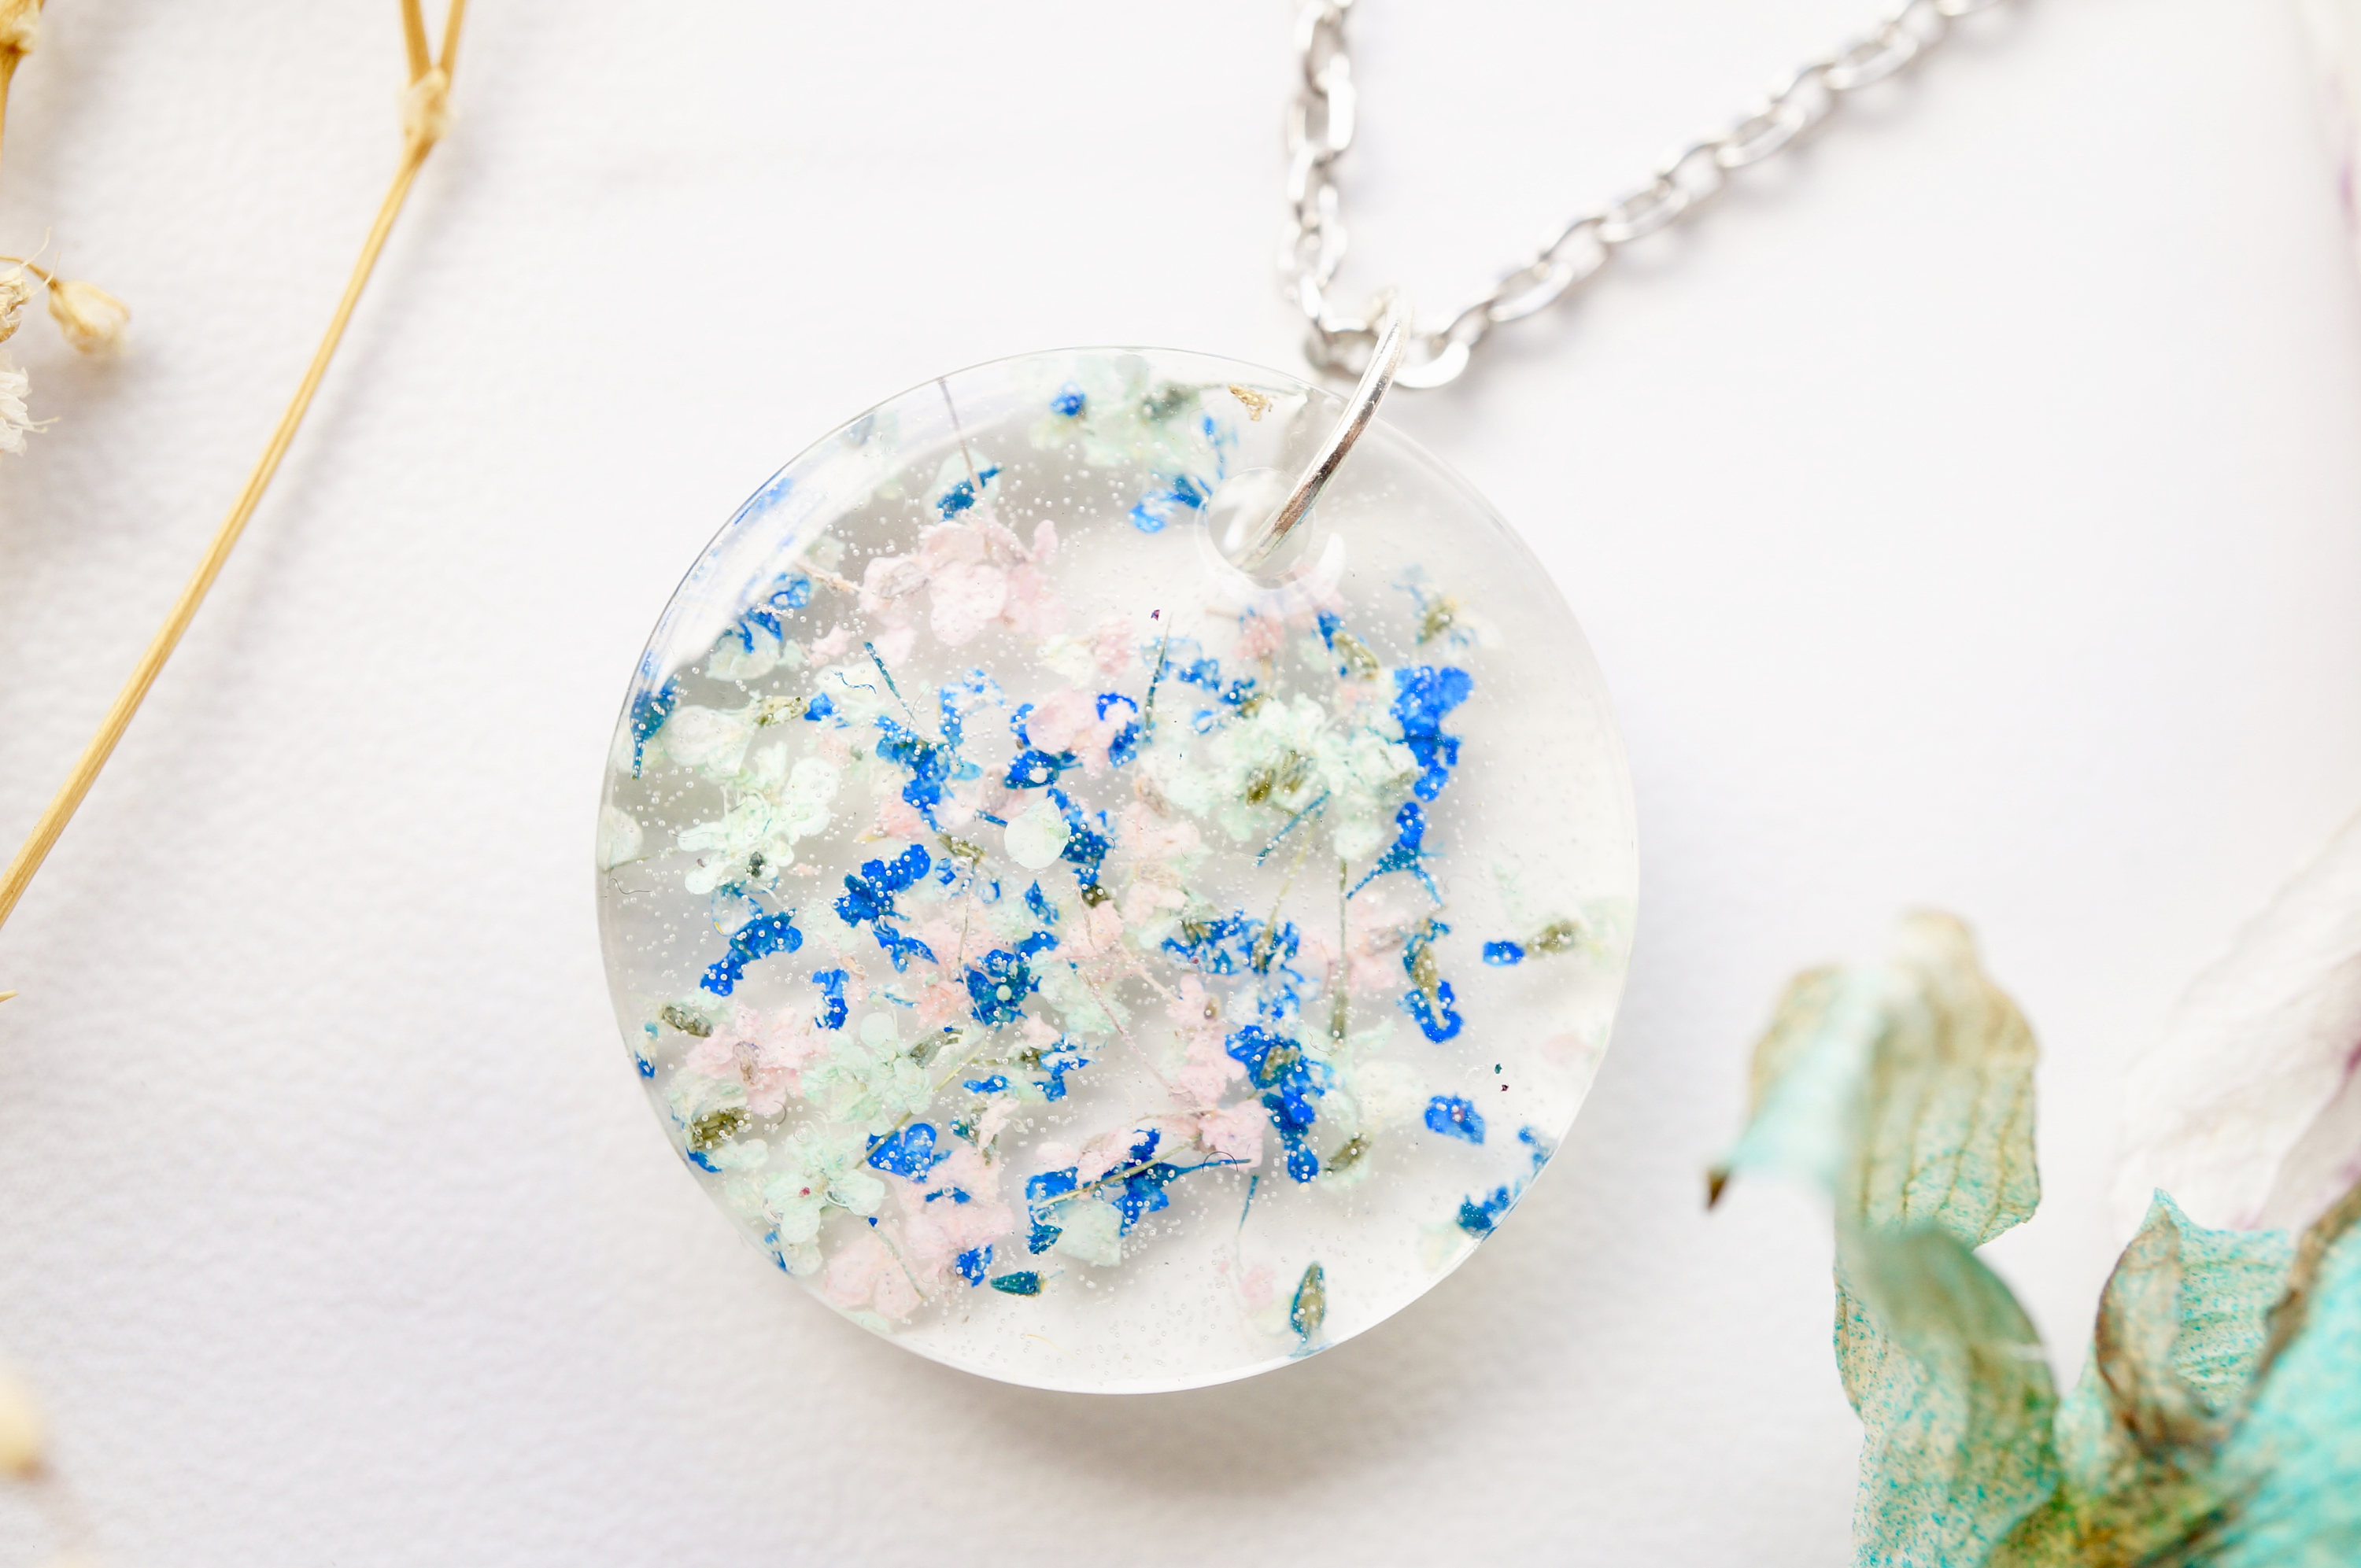 38 mm Pink Erica necklace in hemisphere from resin